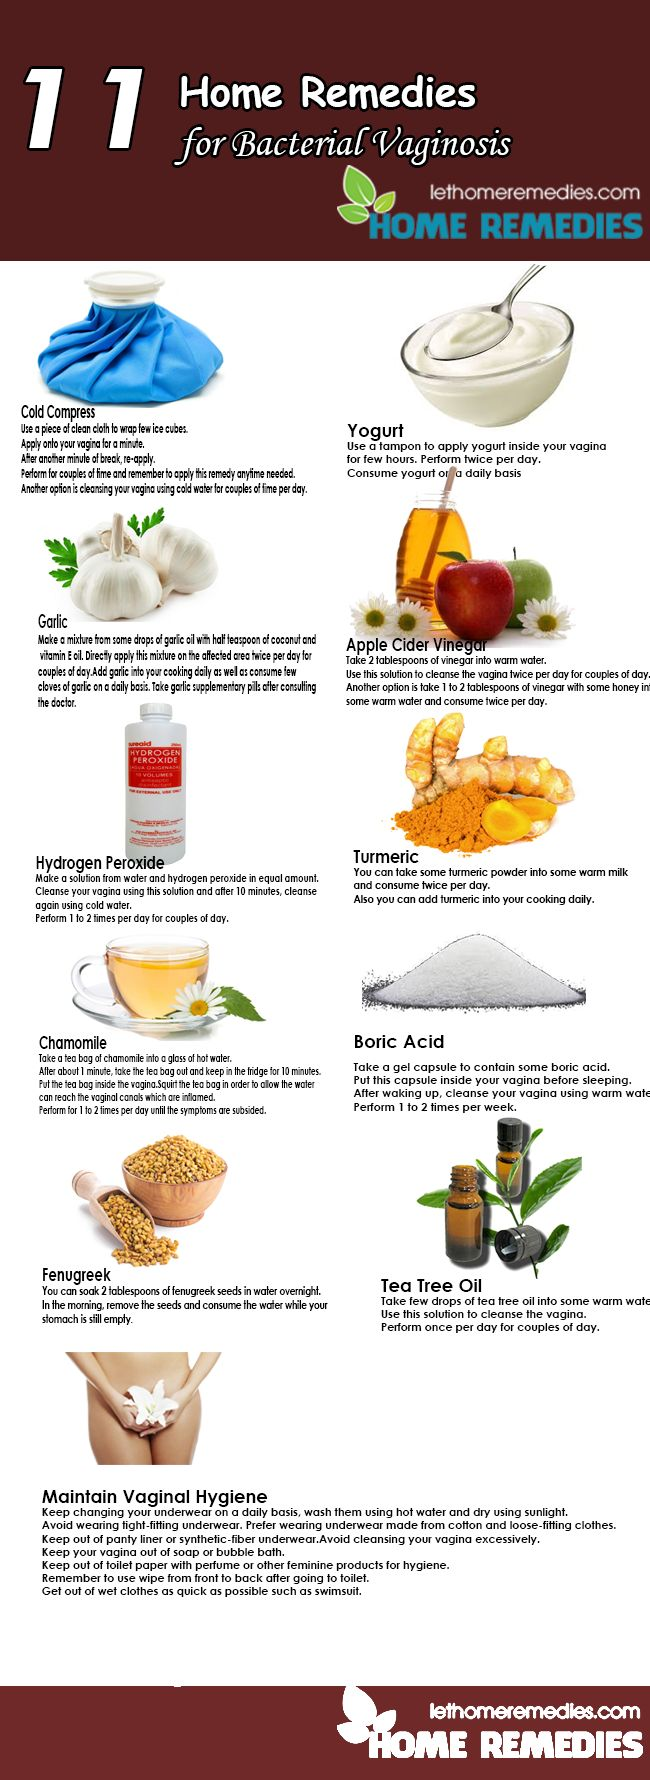 Home Remedies For Bv That Work